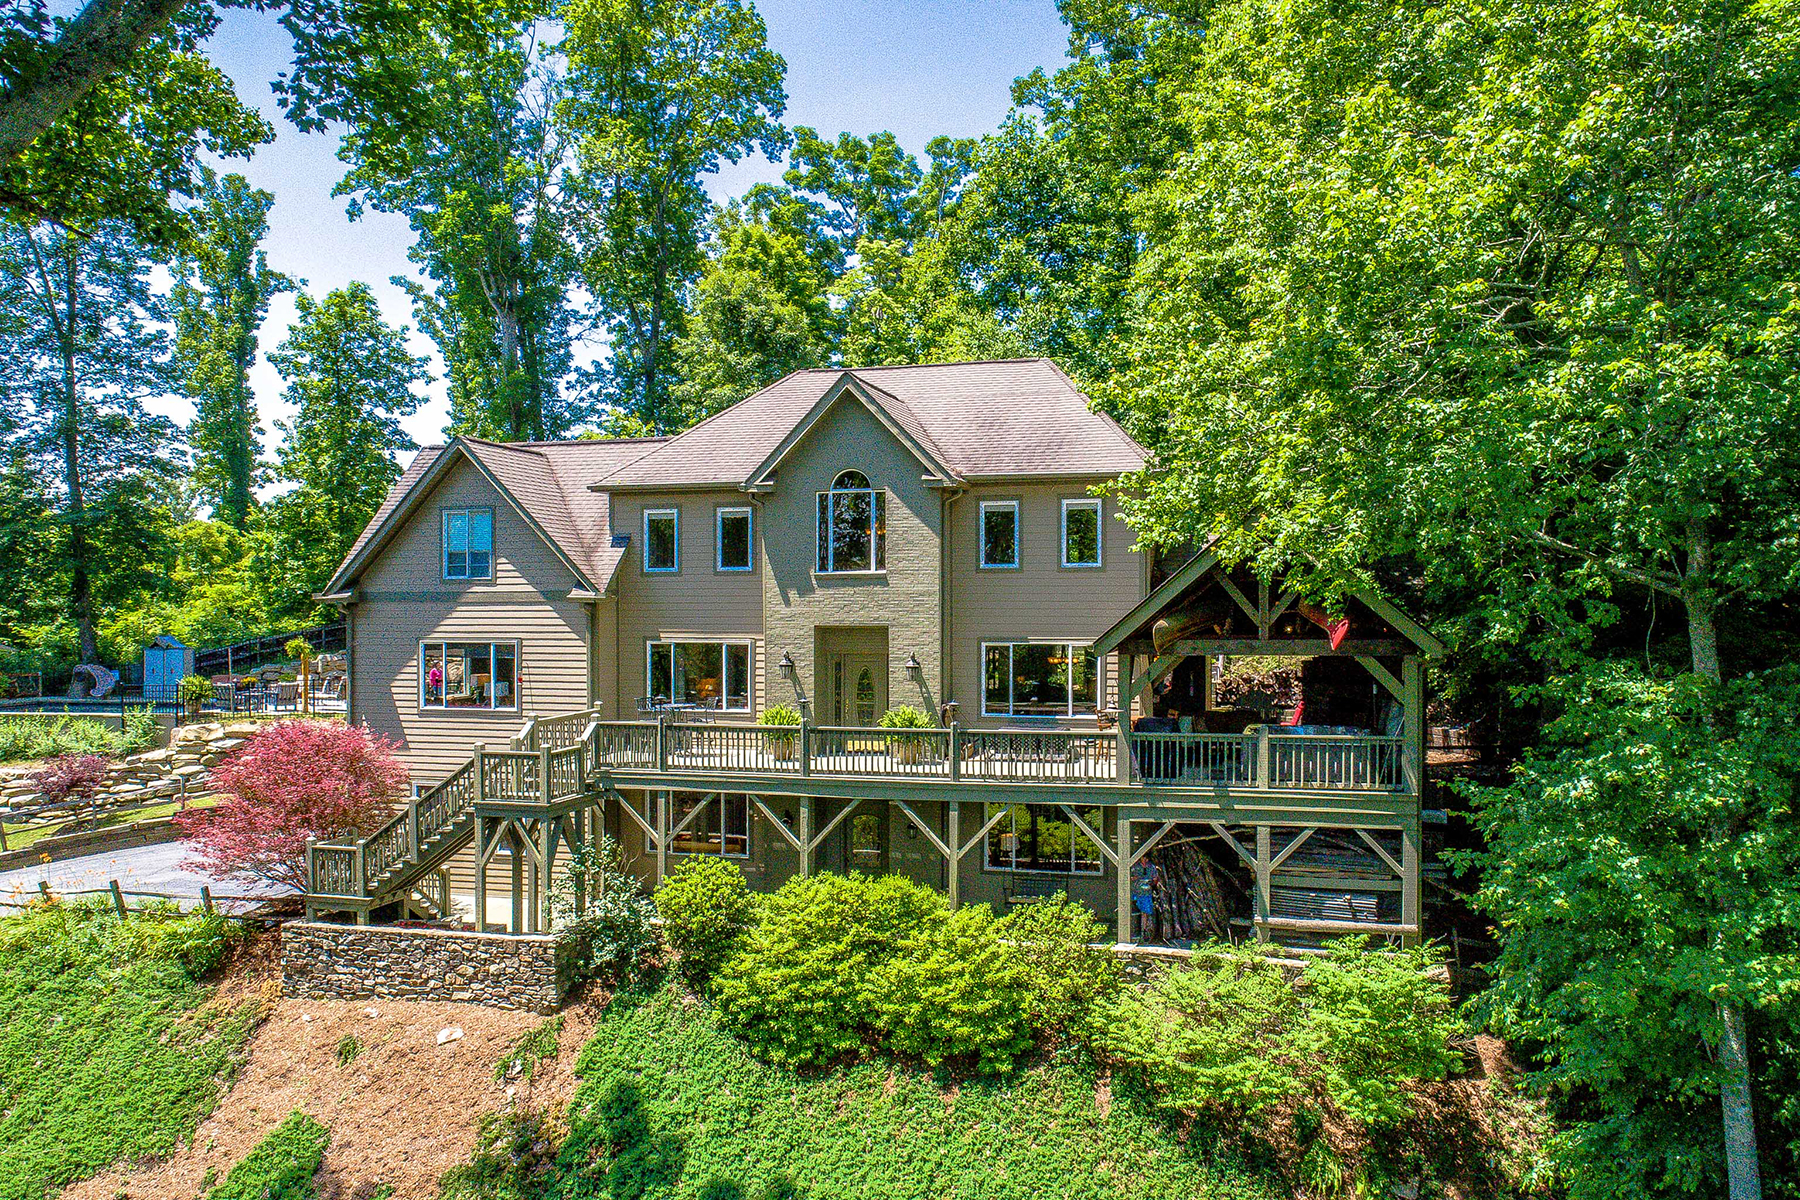 Single Family Home for Active at BLUE RIDGE MOUNTAIN LIVING AT ITS FINEST 61 Foxridge Dr Fletcher, North Carolina 28732 United States